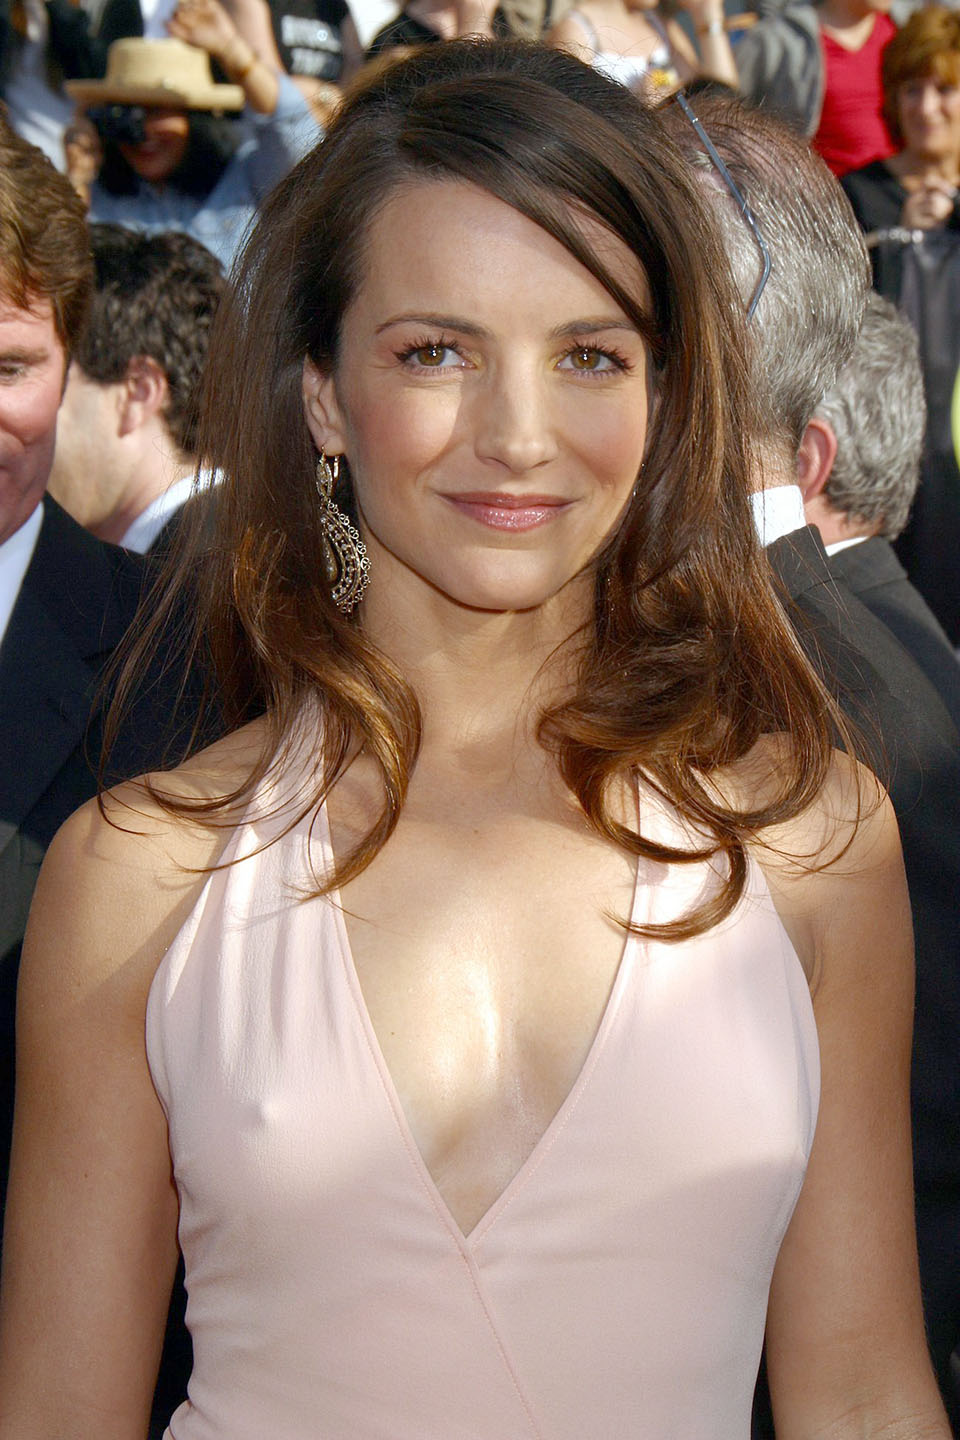 Kristin Davis Leaked Nude Pics, Blowjob and Sex Photos